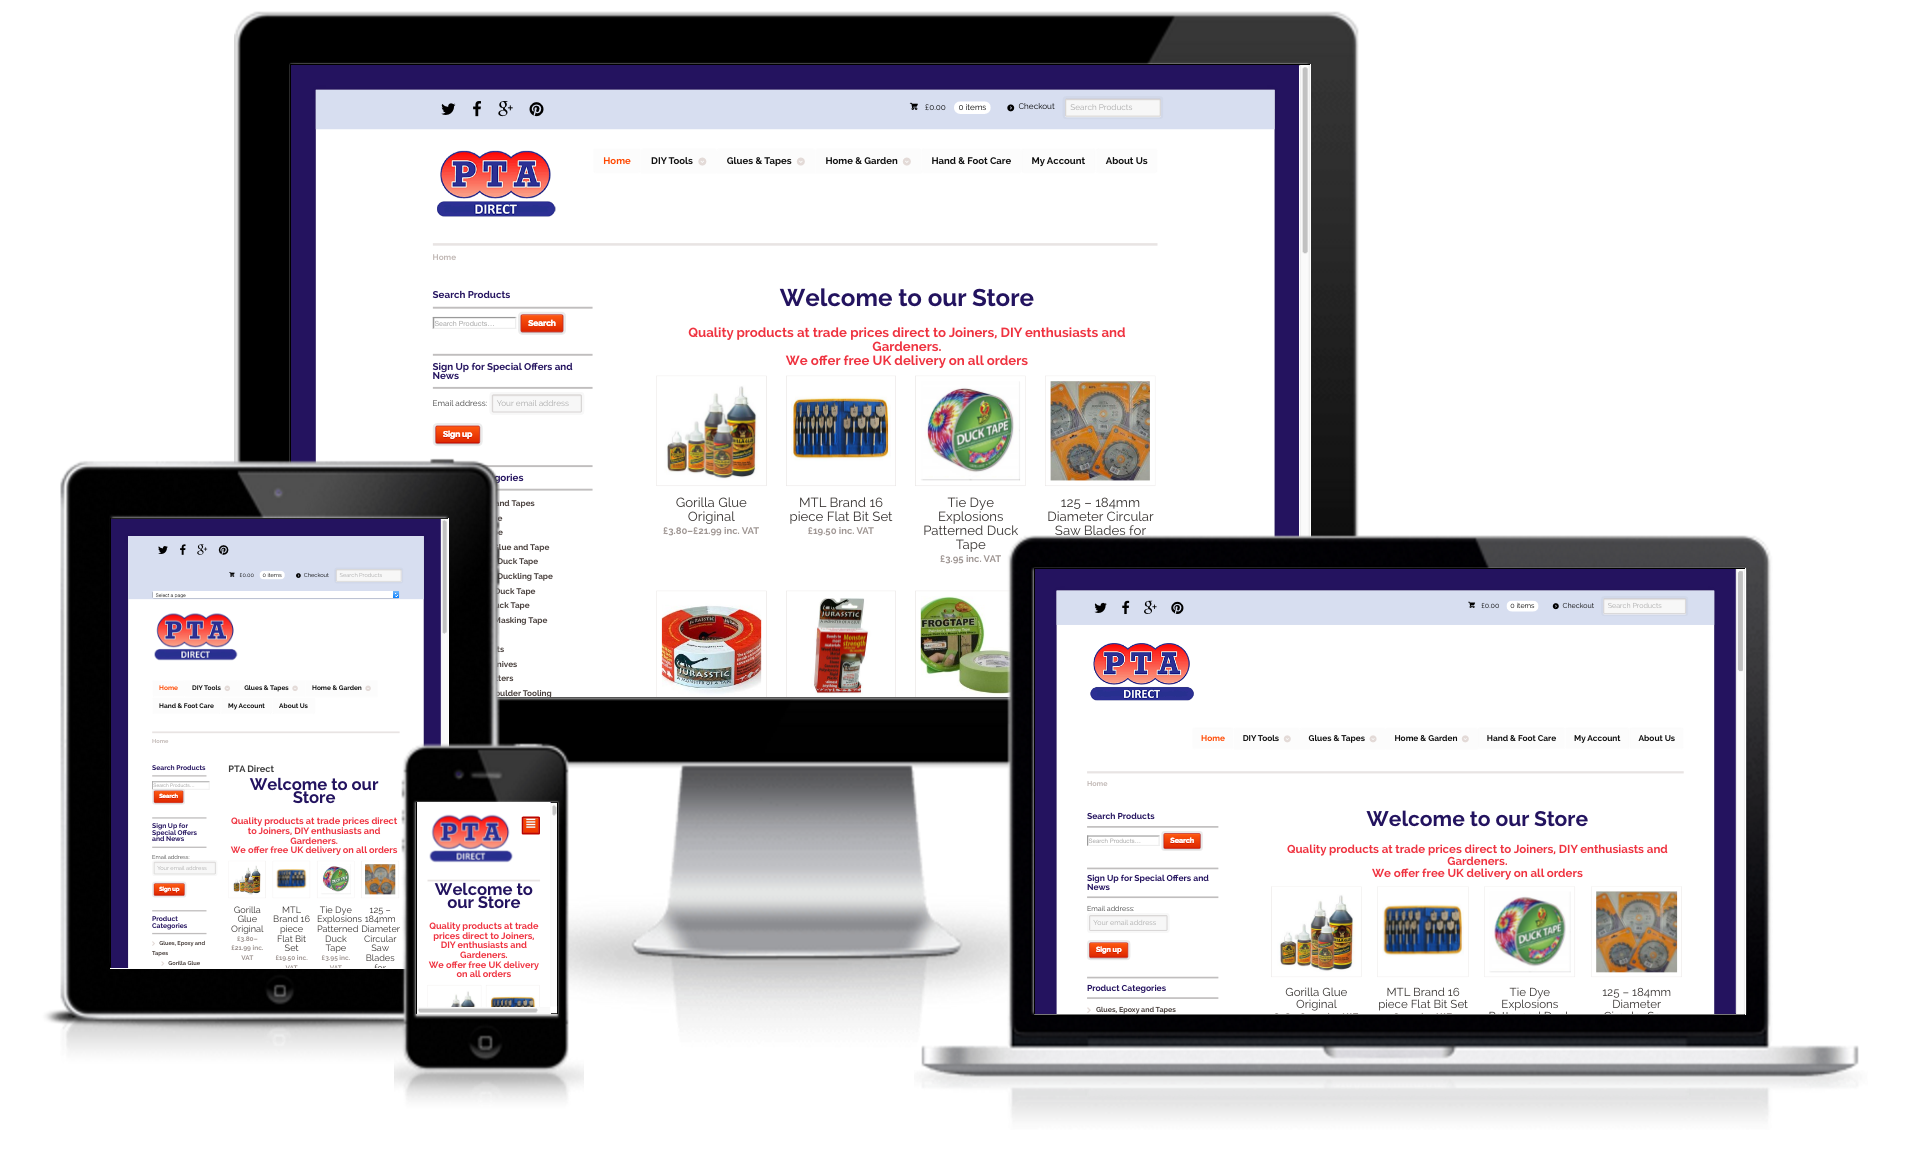 PTA Direct E-Commerce Website Design